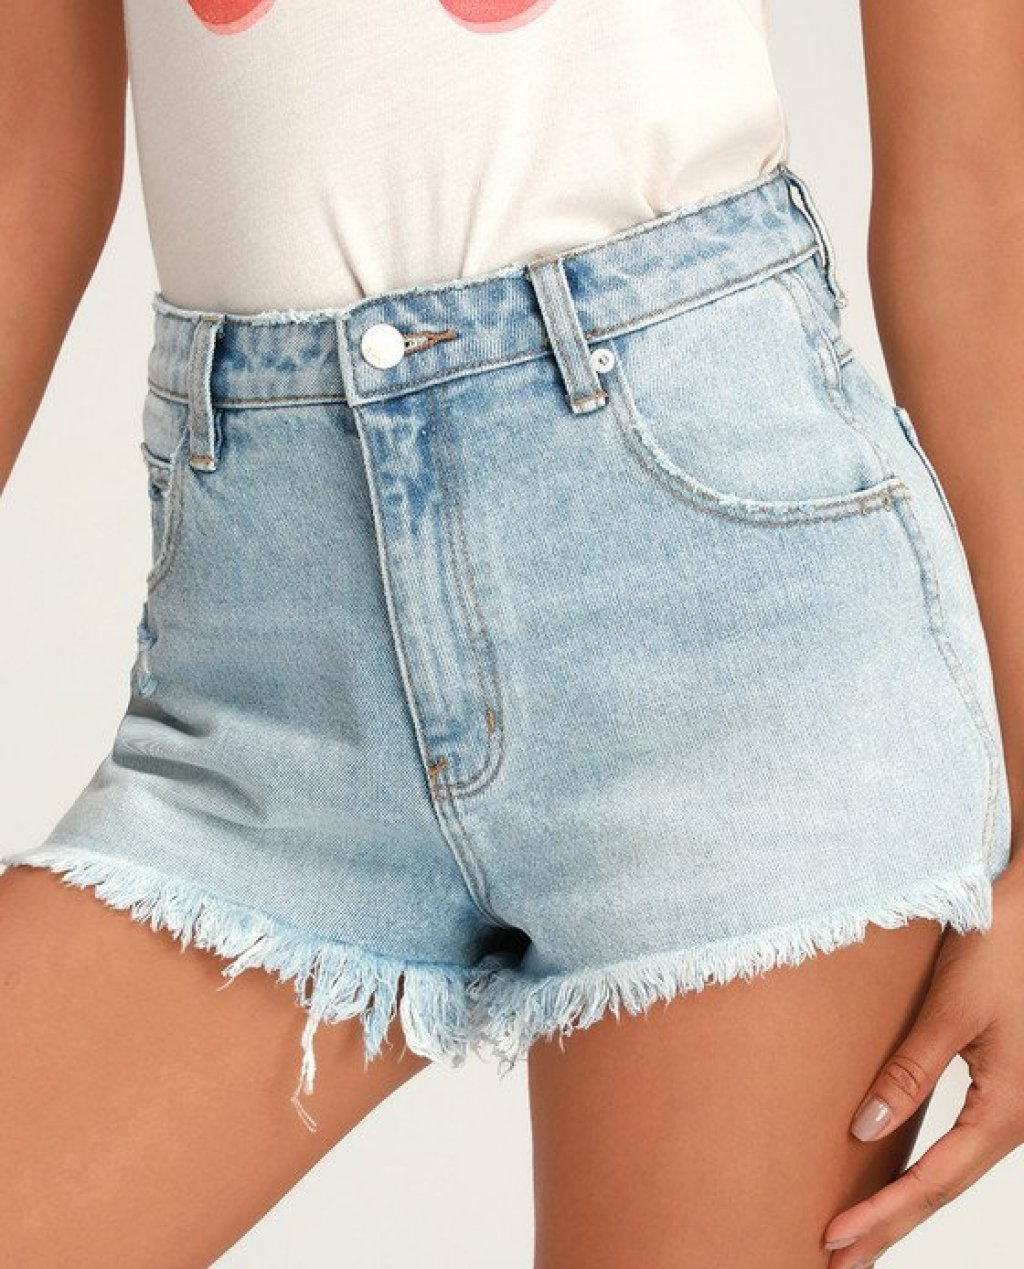 Dusters Light Wash High Waisted Distressed Denim Cutoff Shorts